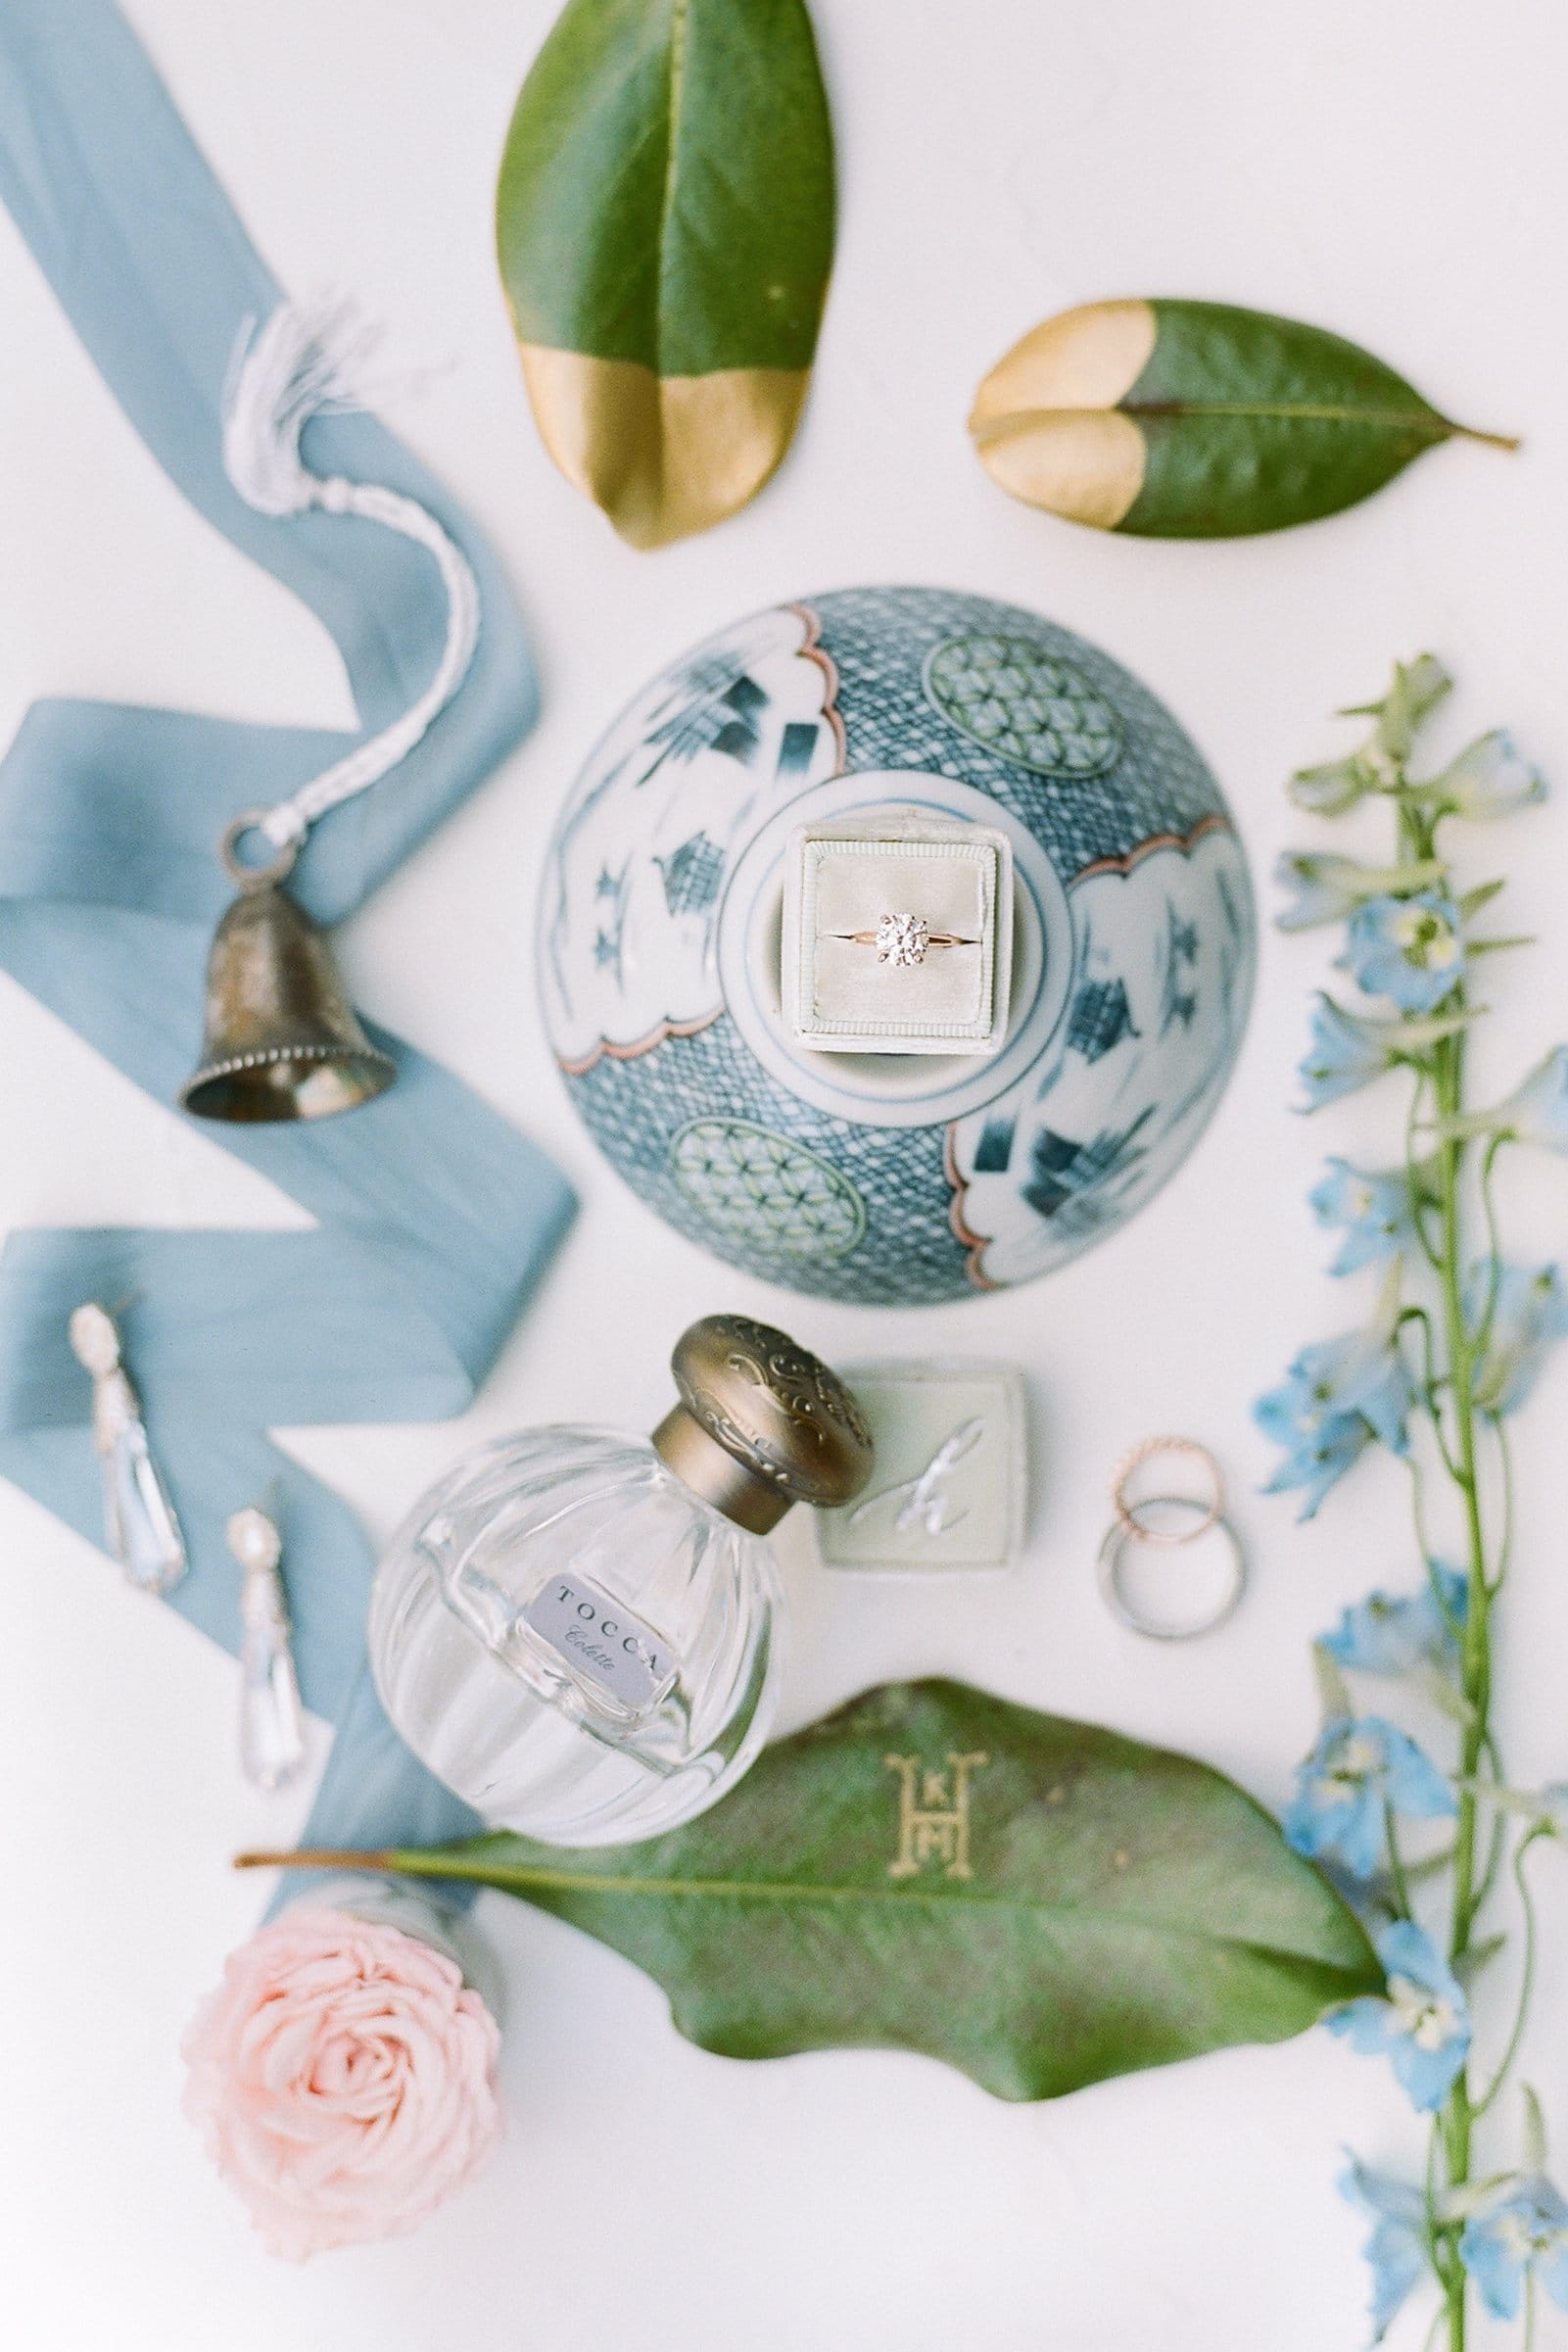 mrs. box and tocca perfume bridal details with calligraphy name tags and bell